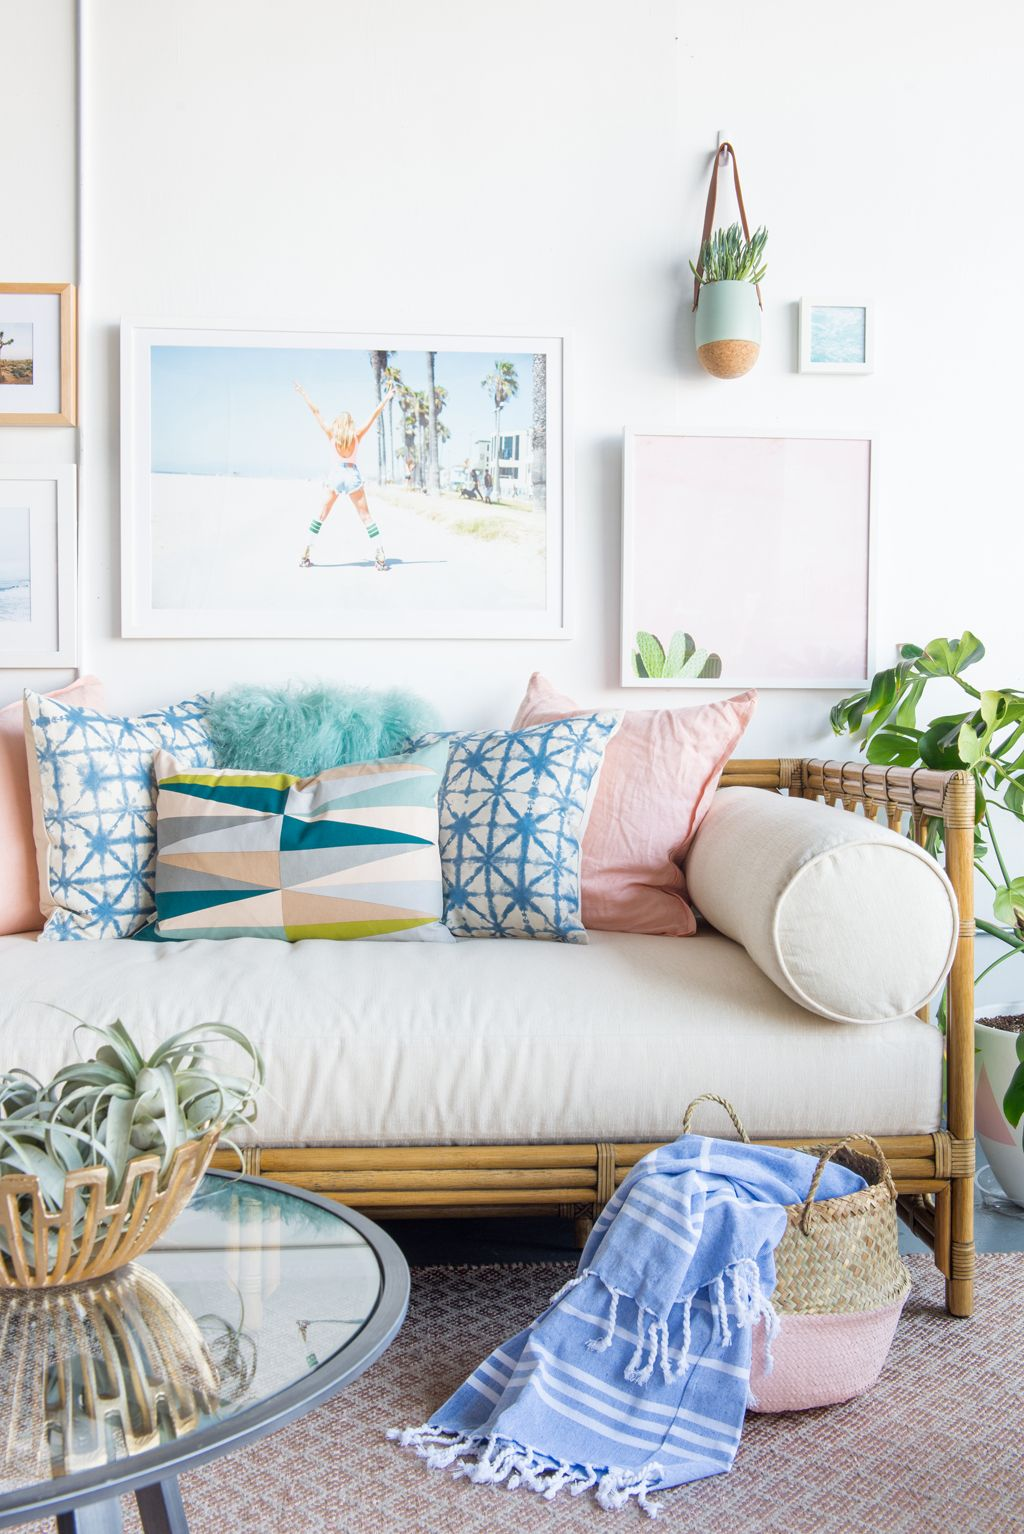 Living Room Inspirations A Pile Of Pillows Helps The